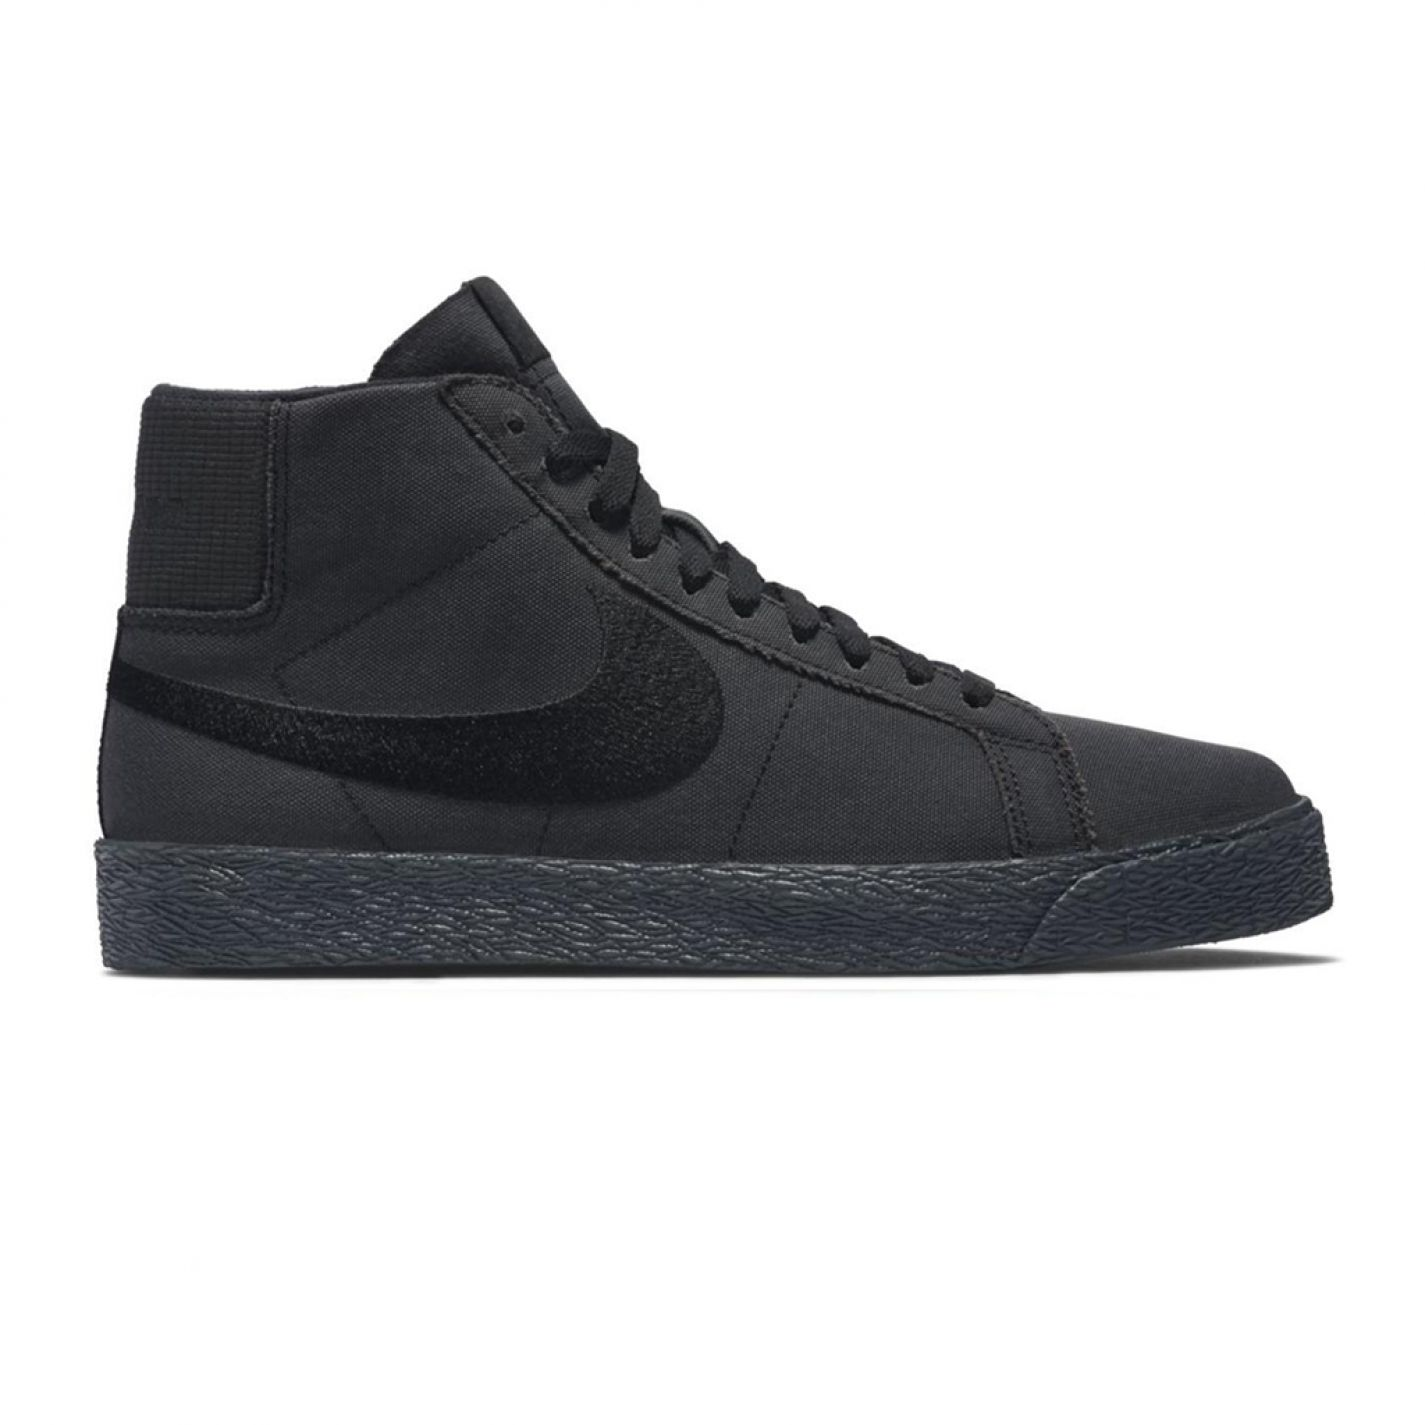 Nike SB Orange Label Zoom Blazer Mid Iso Smoke Grey/Black